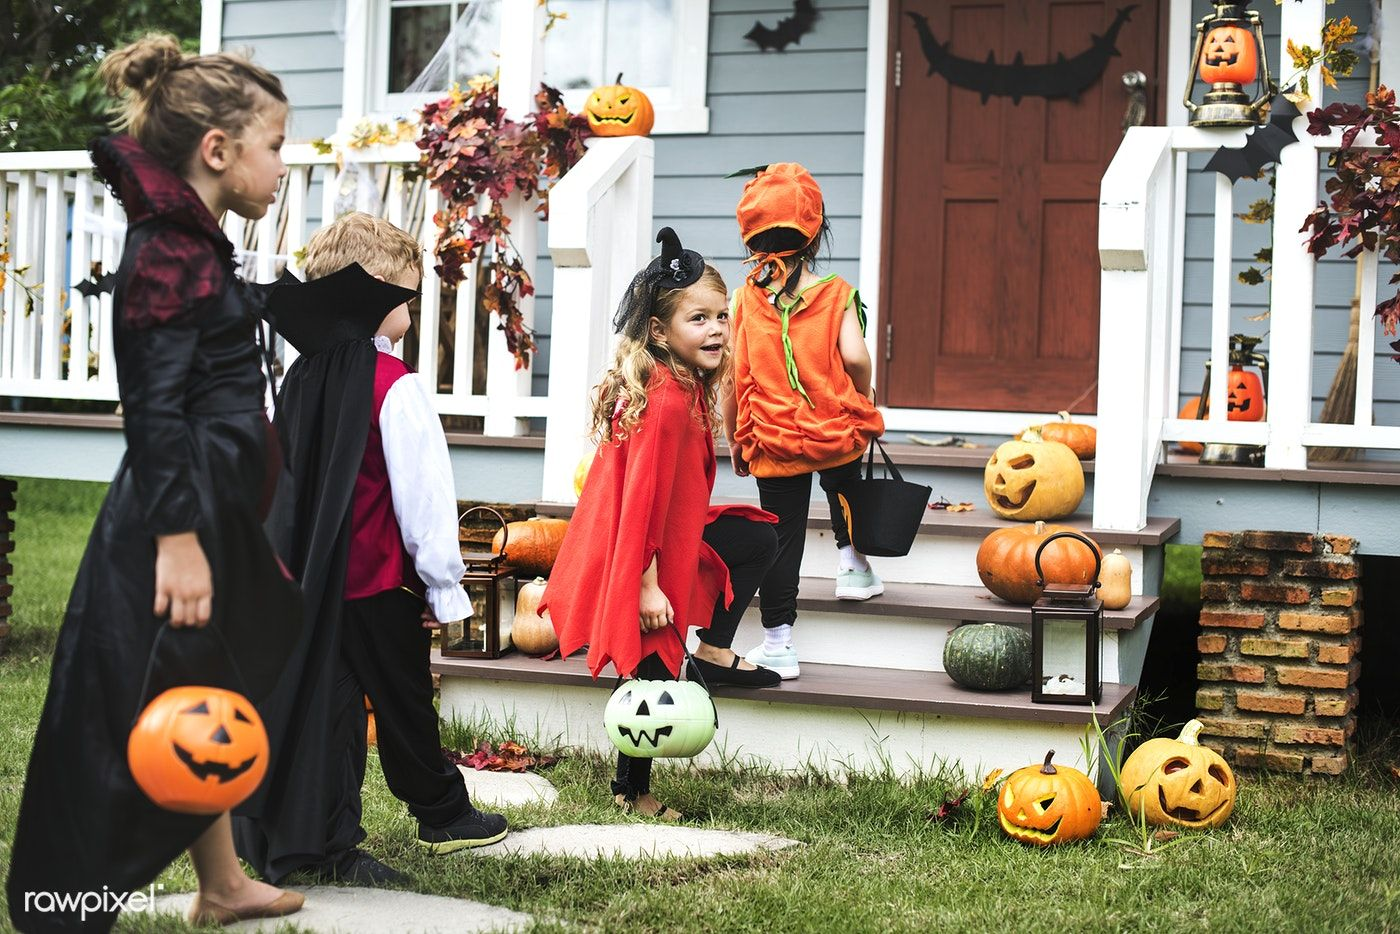 Download premium photo of Little kids trick or treating